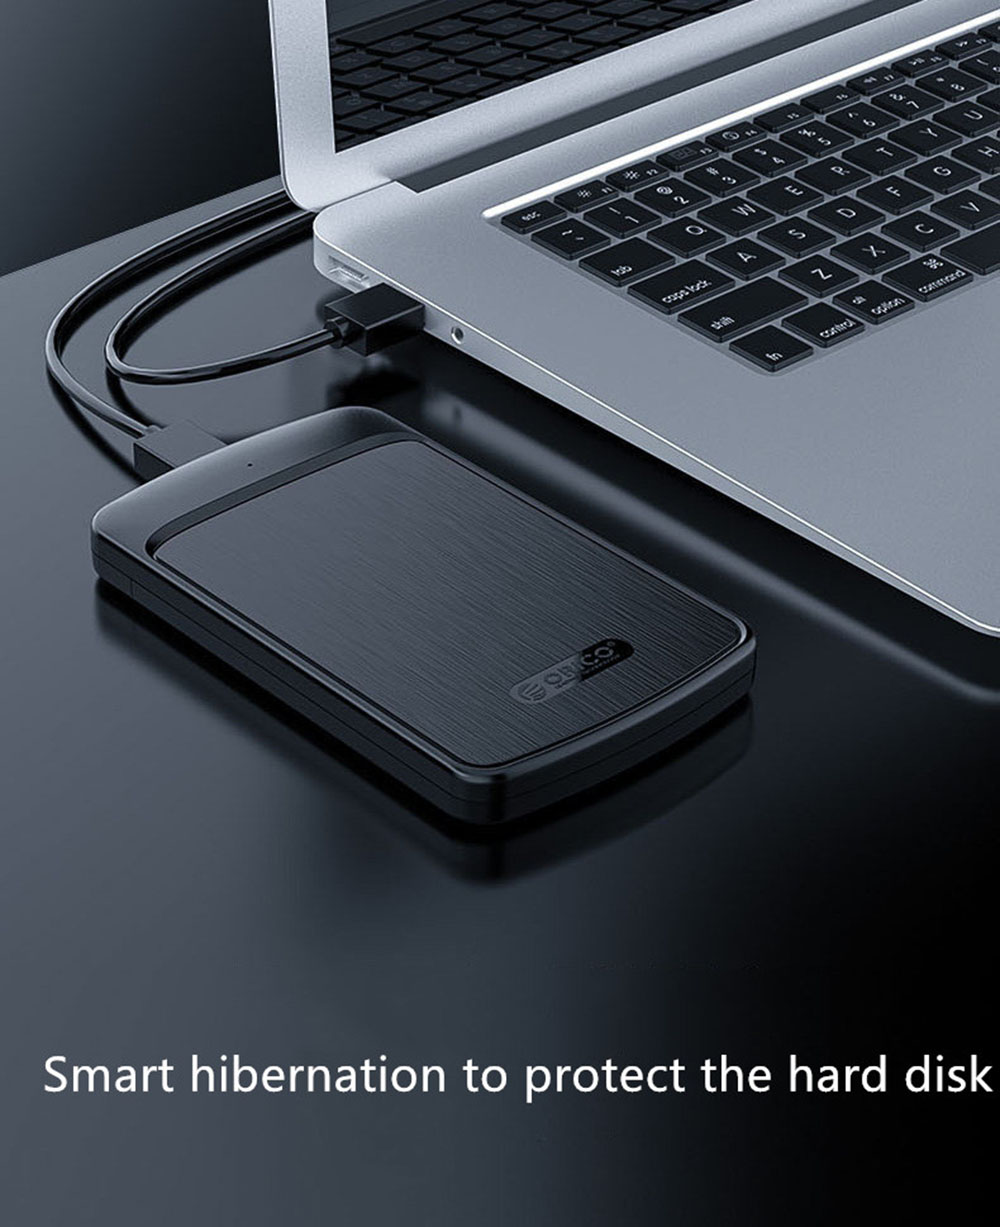 Orico HDD Enclosure External Hard Drive Mobile Hard Disk Protection Box SATA 3.0 USB 3.0 5 Gbps 4 TB Compatible SSD UASP HD - Carbon Fiber Black